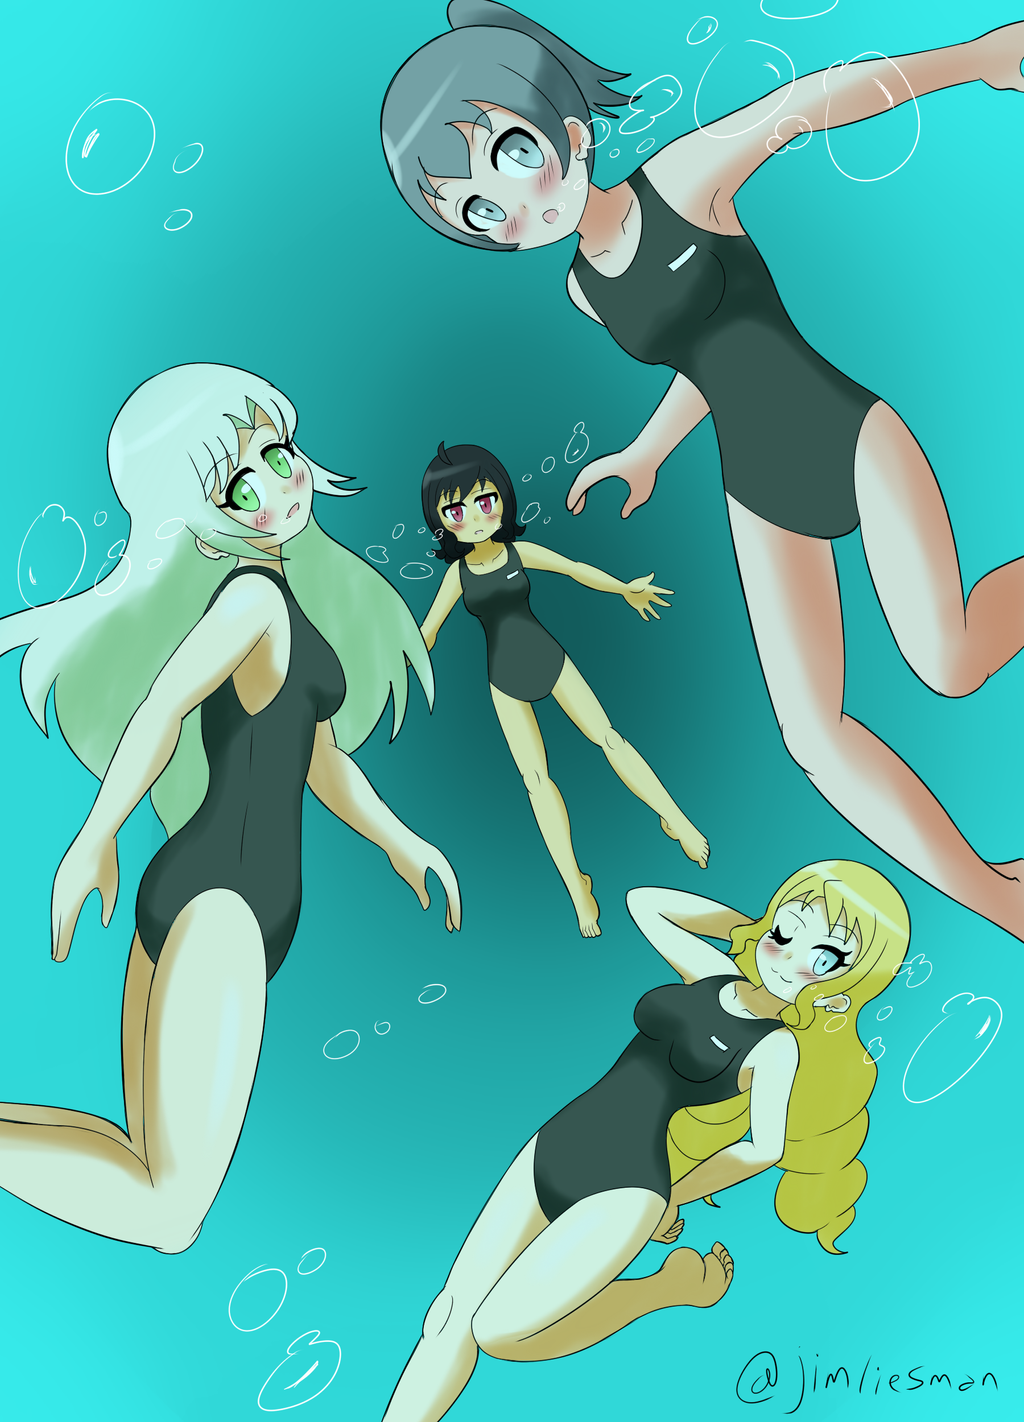 Girls In One Piece Swimsuits By Jimliesman On Deviantart